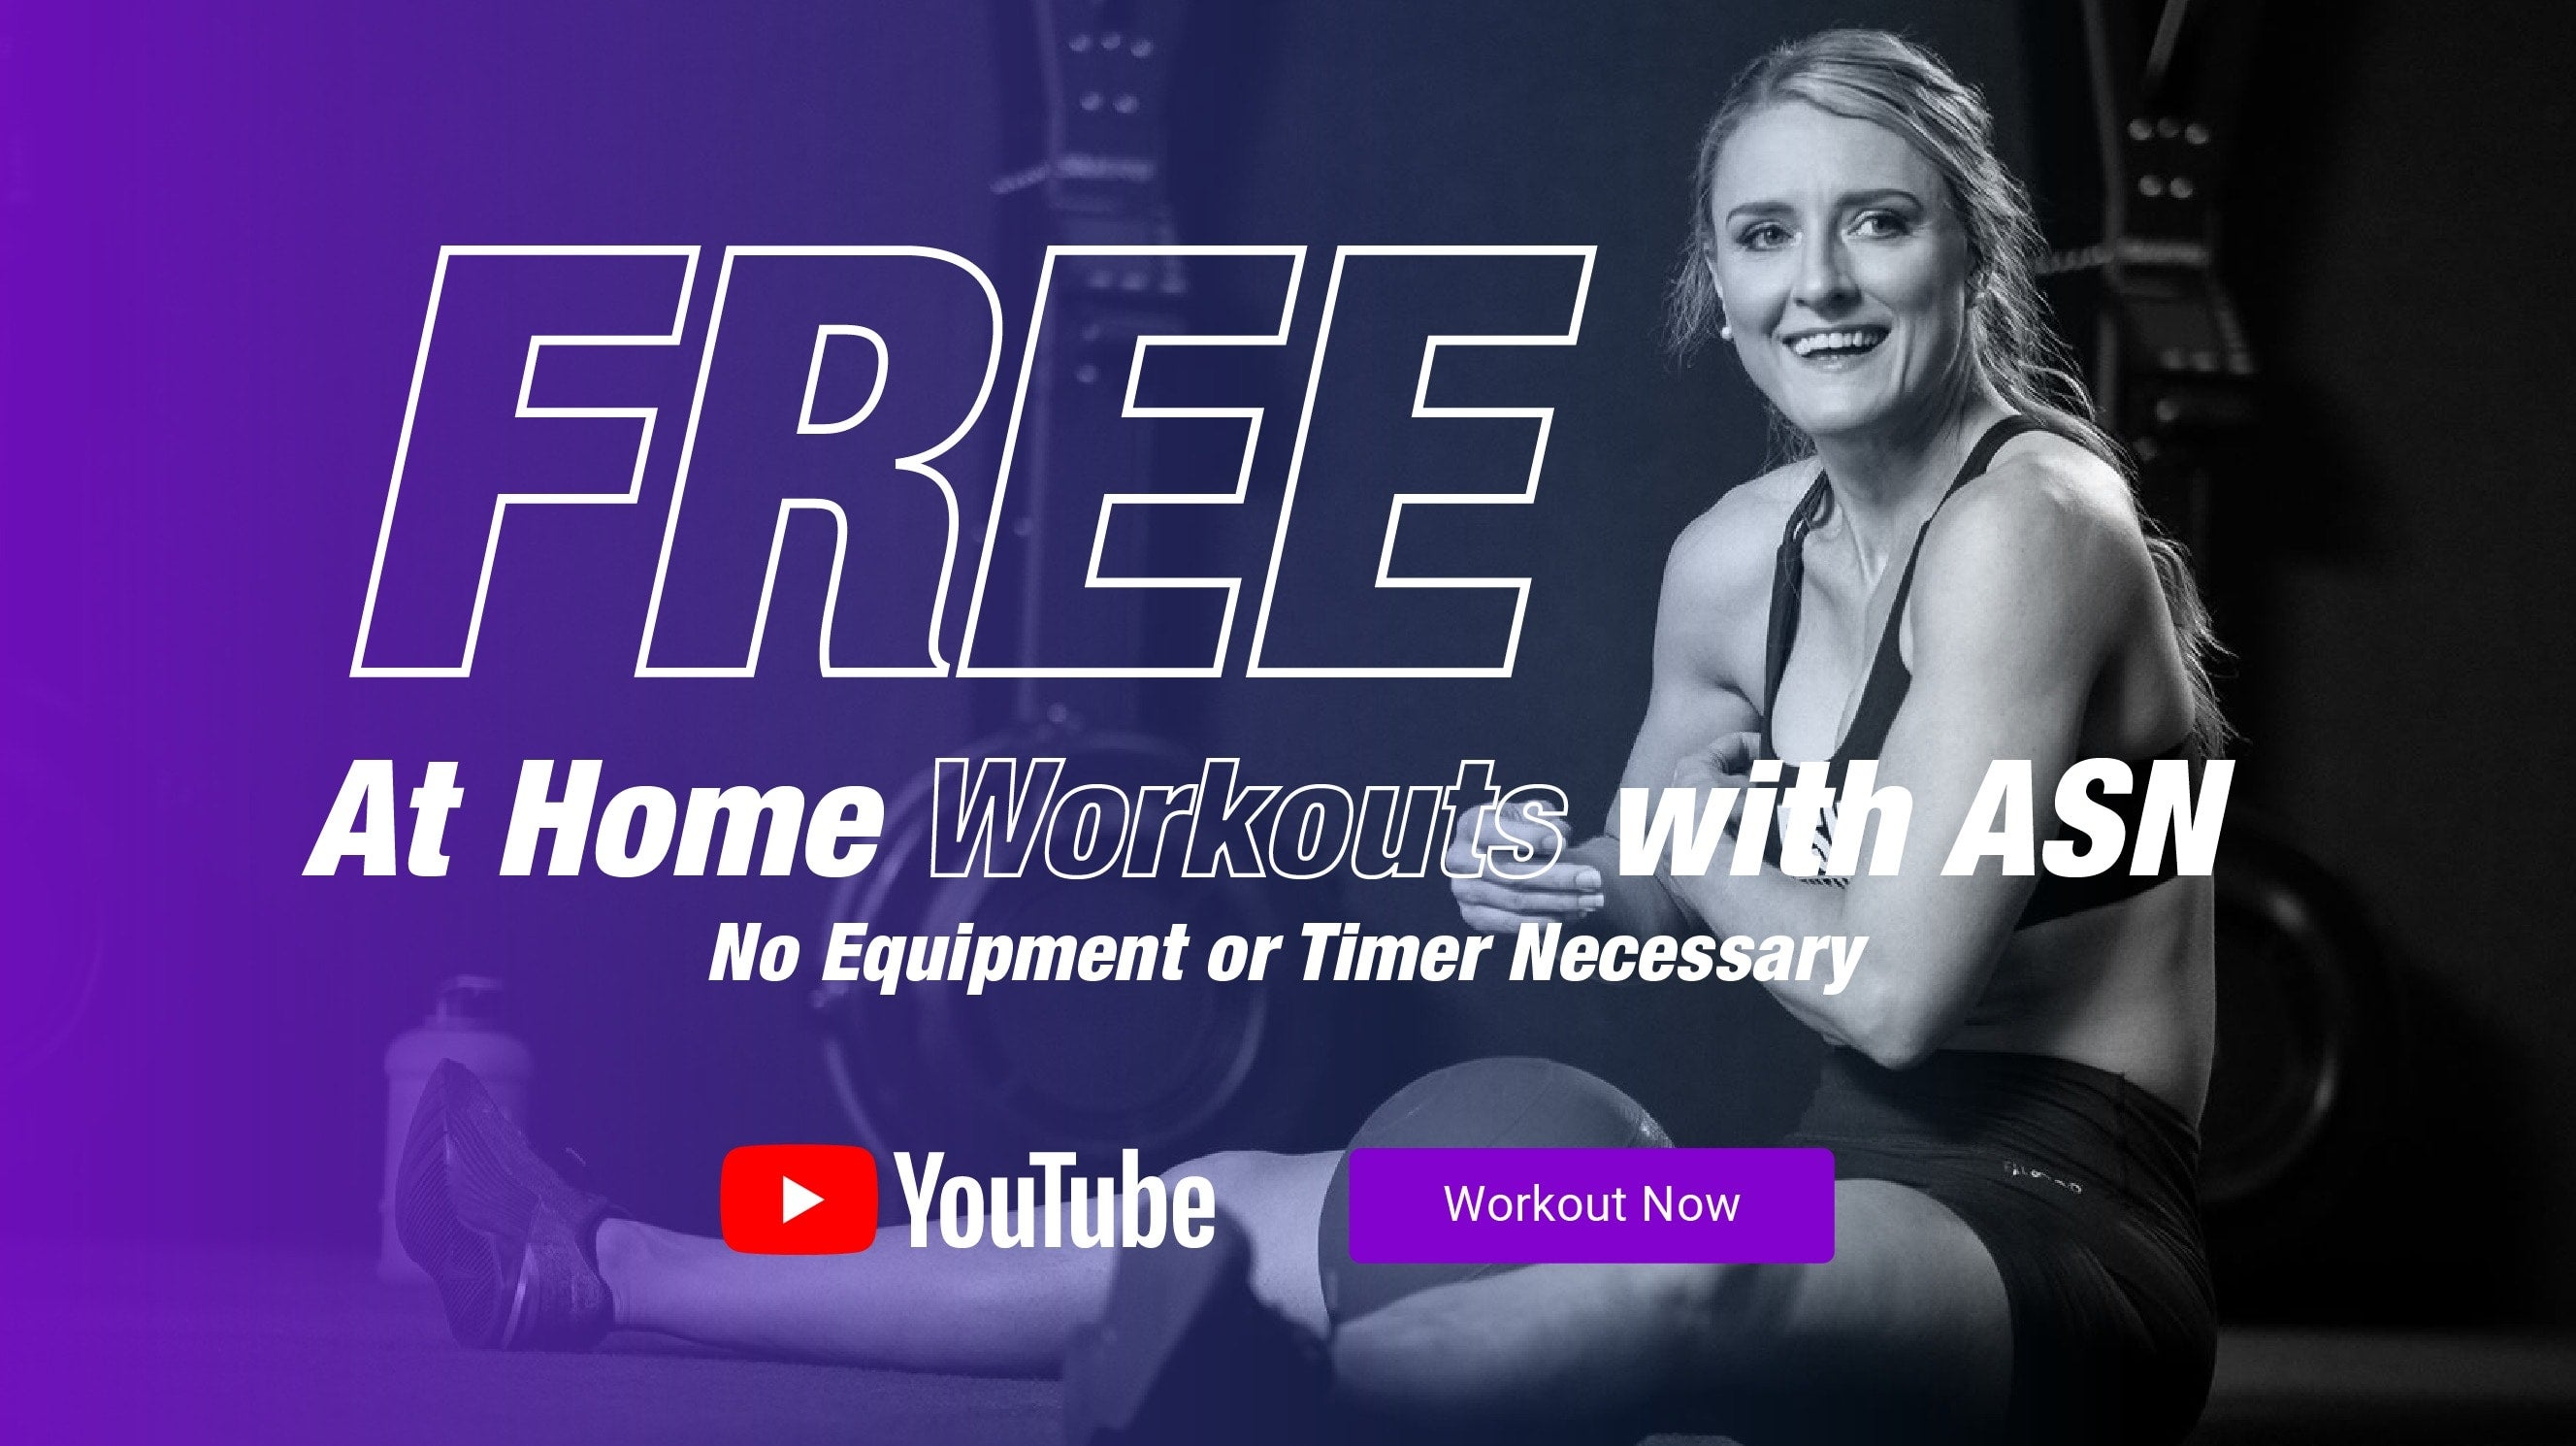 FREE At Home Workout with ASN